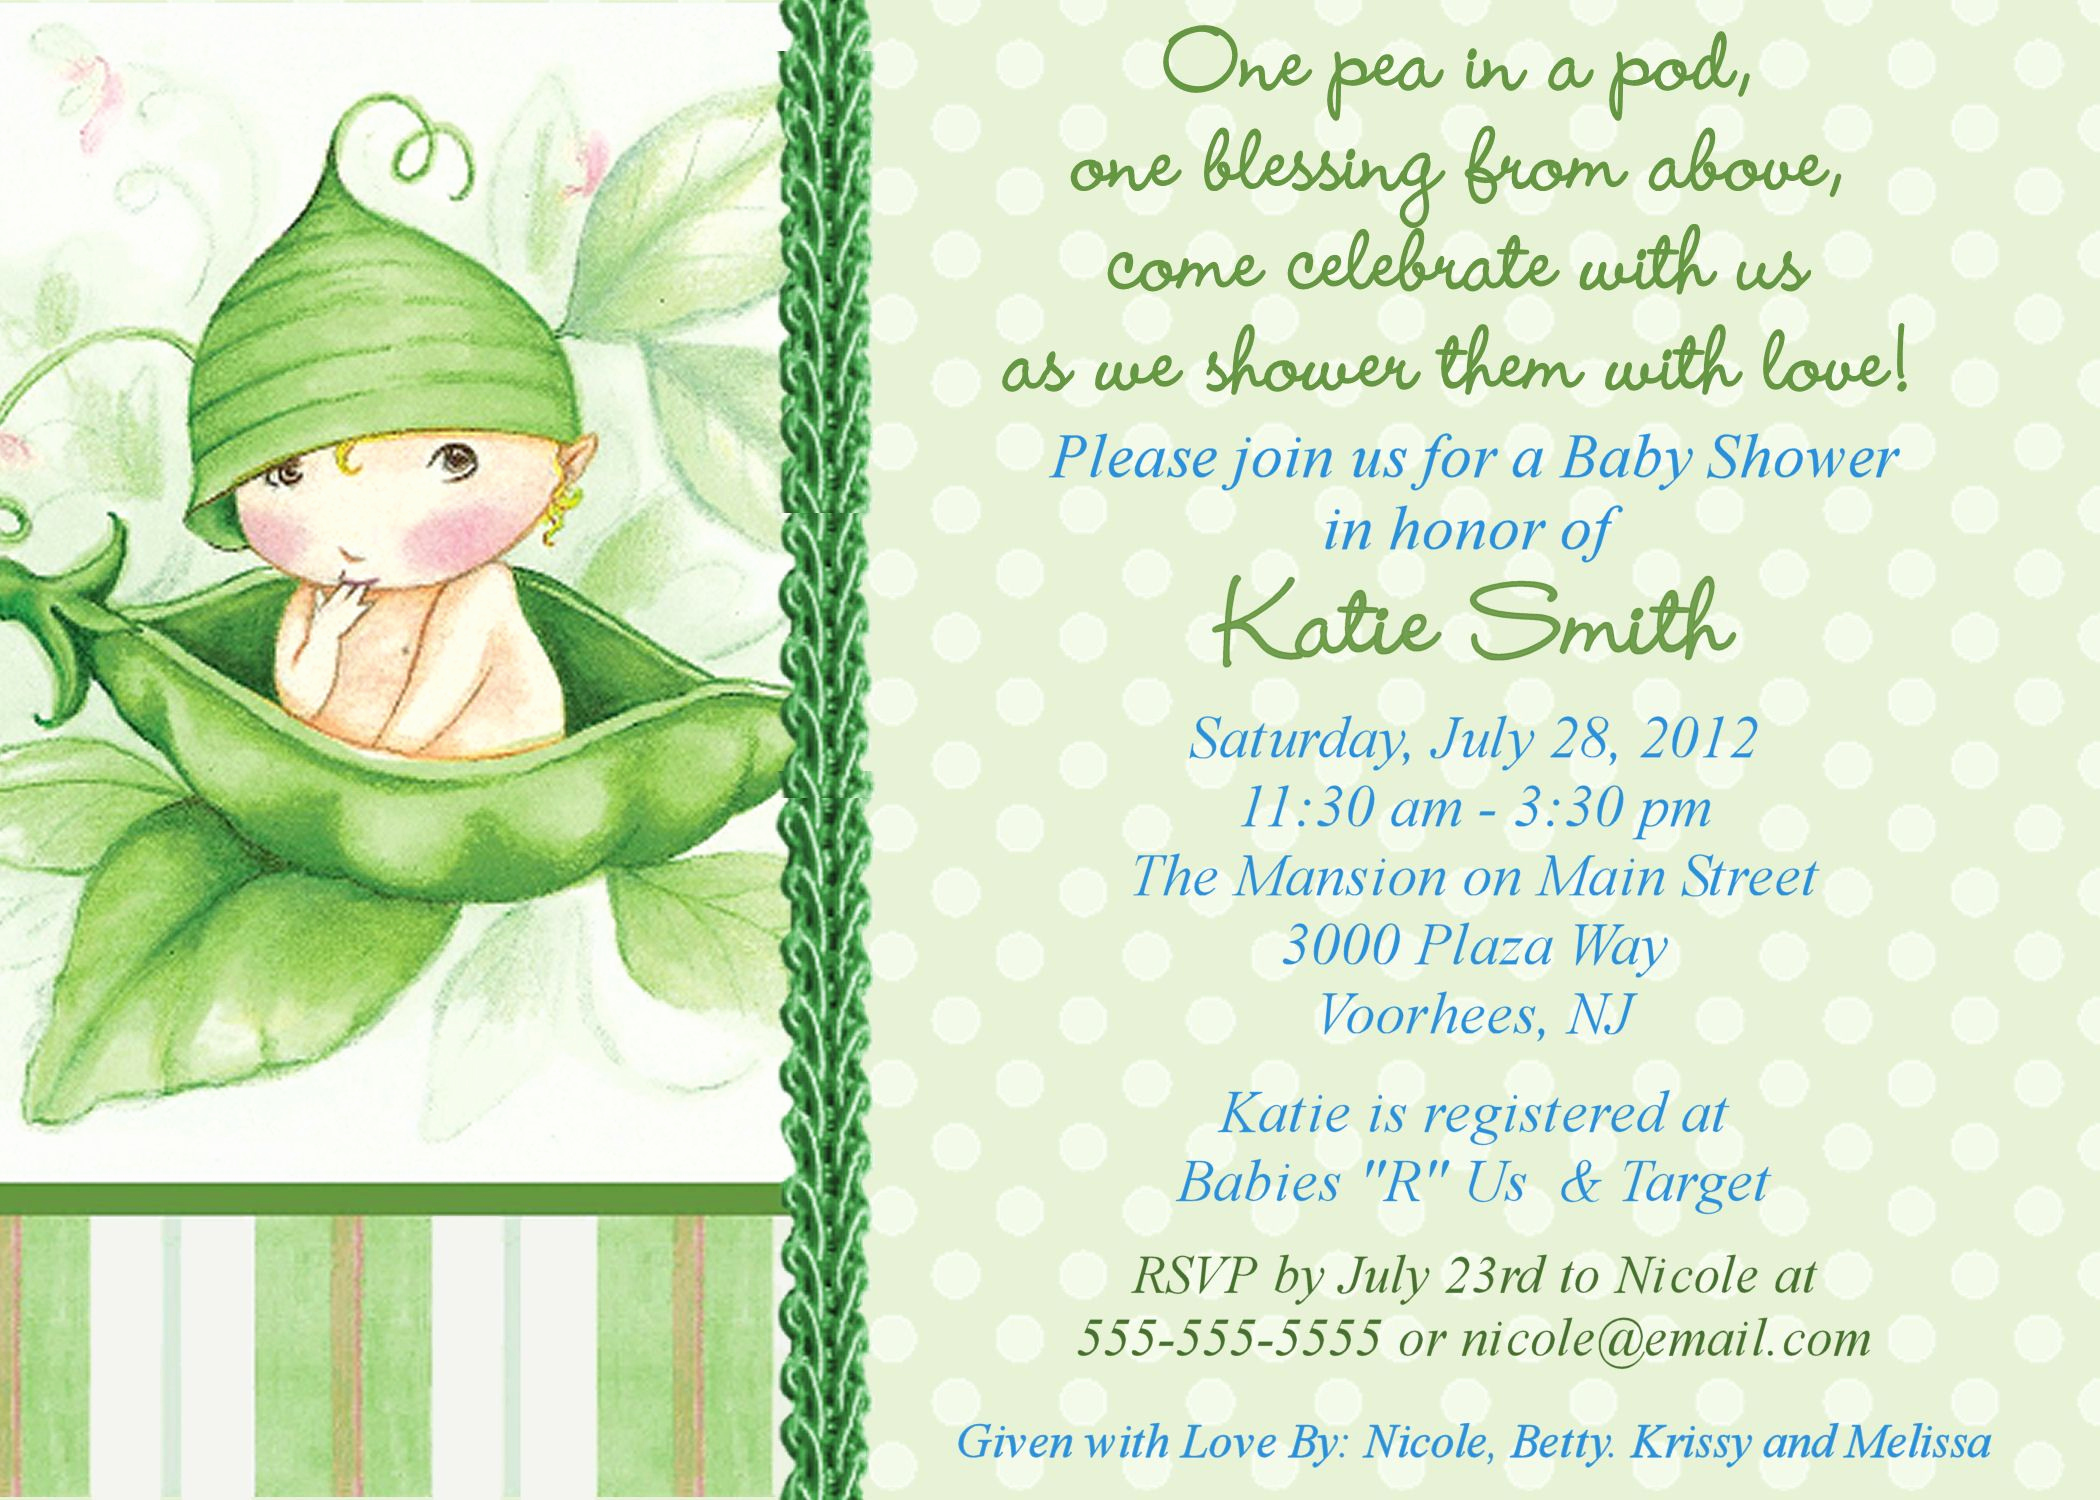 Sample Baby Shower Invitations Elegant Free Line Baby Shower Invitations